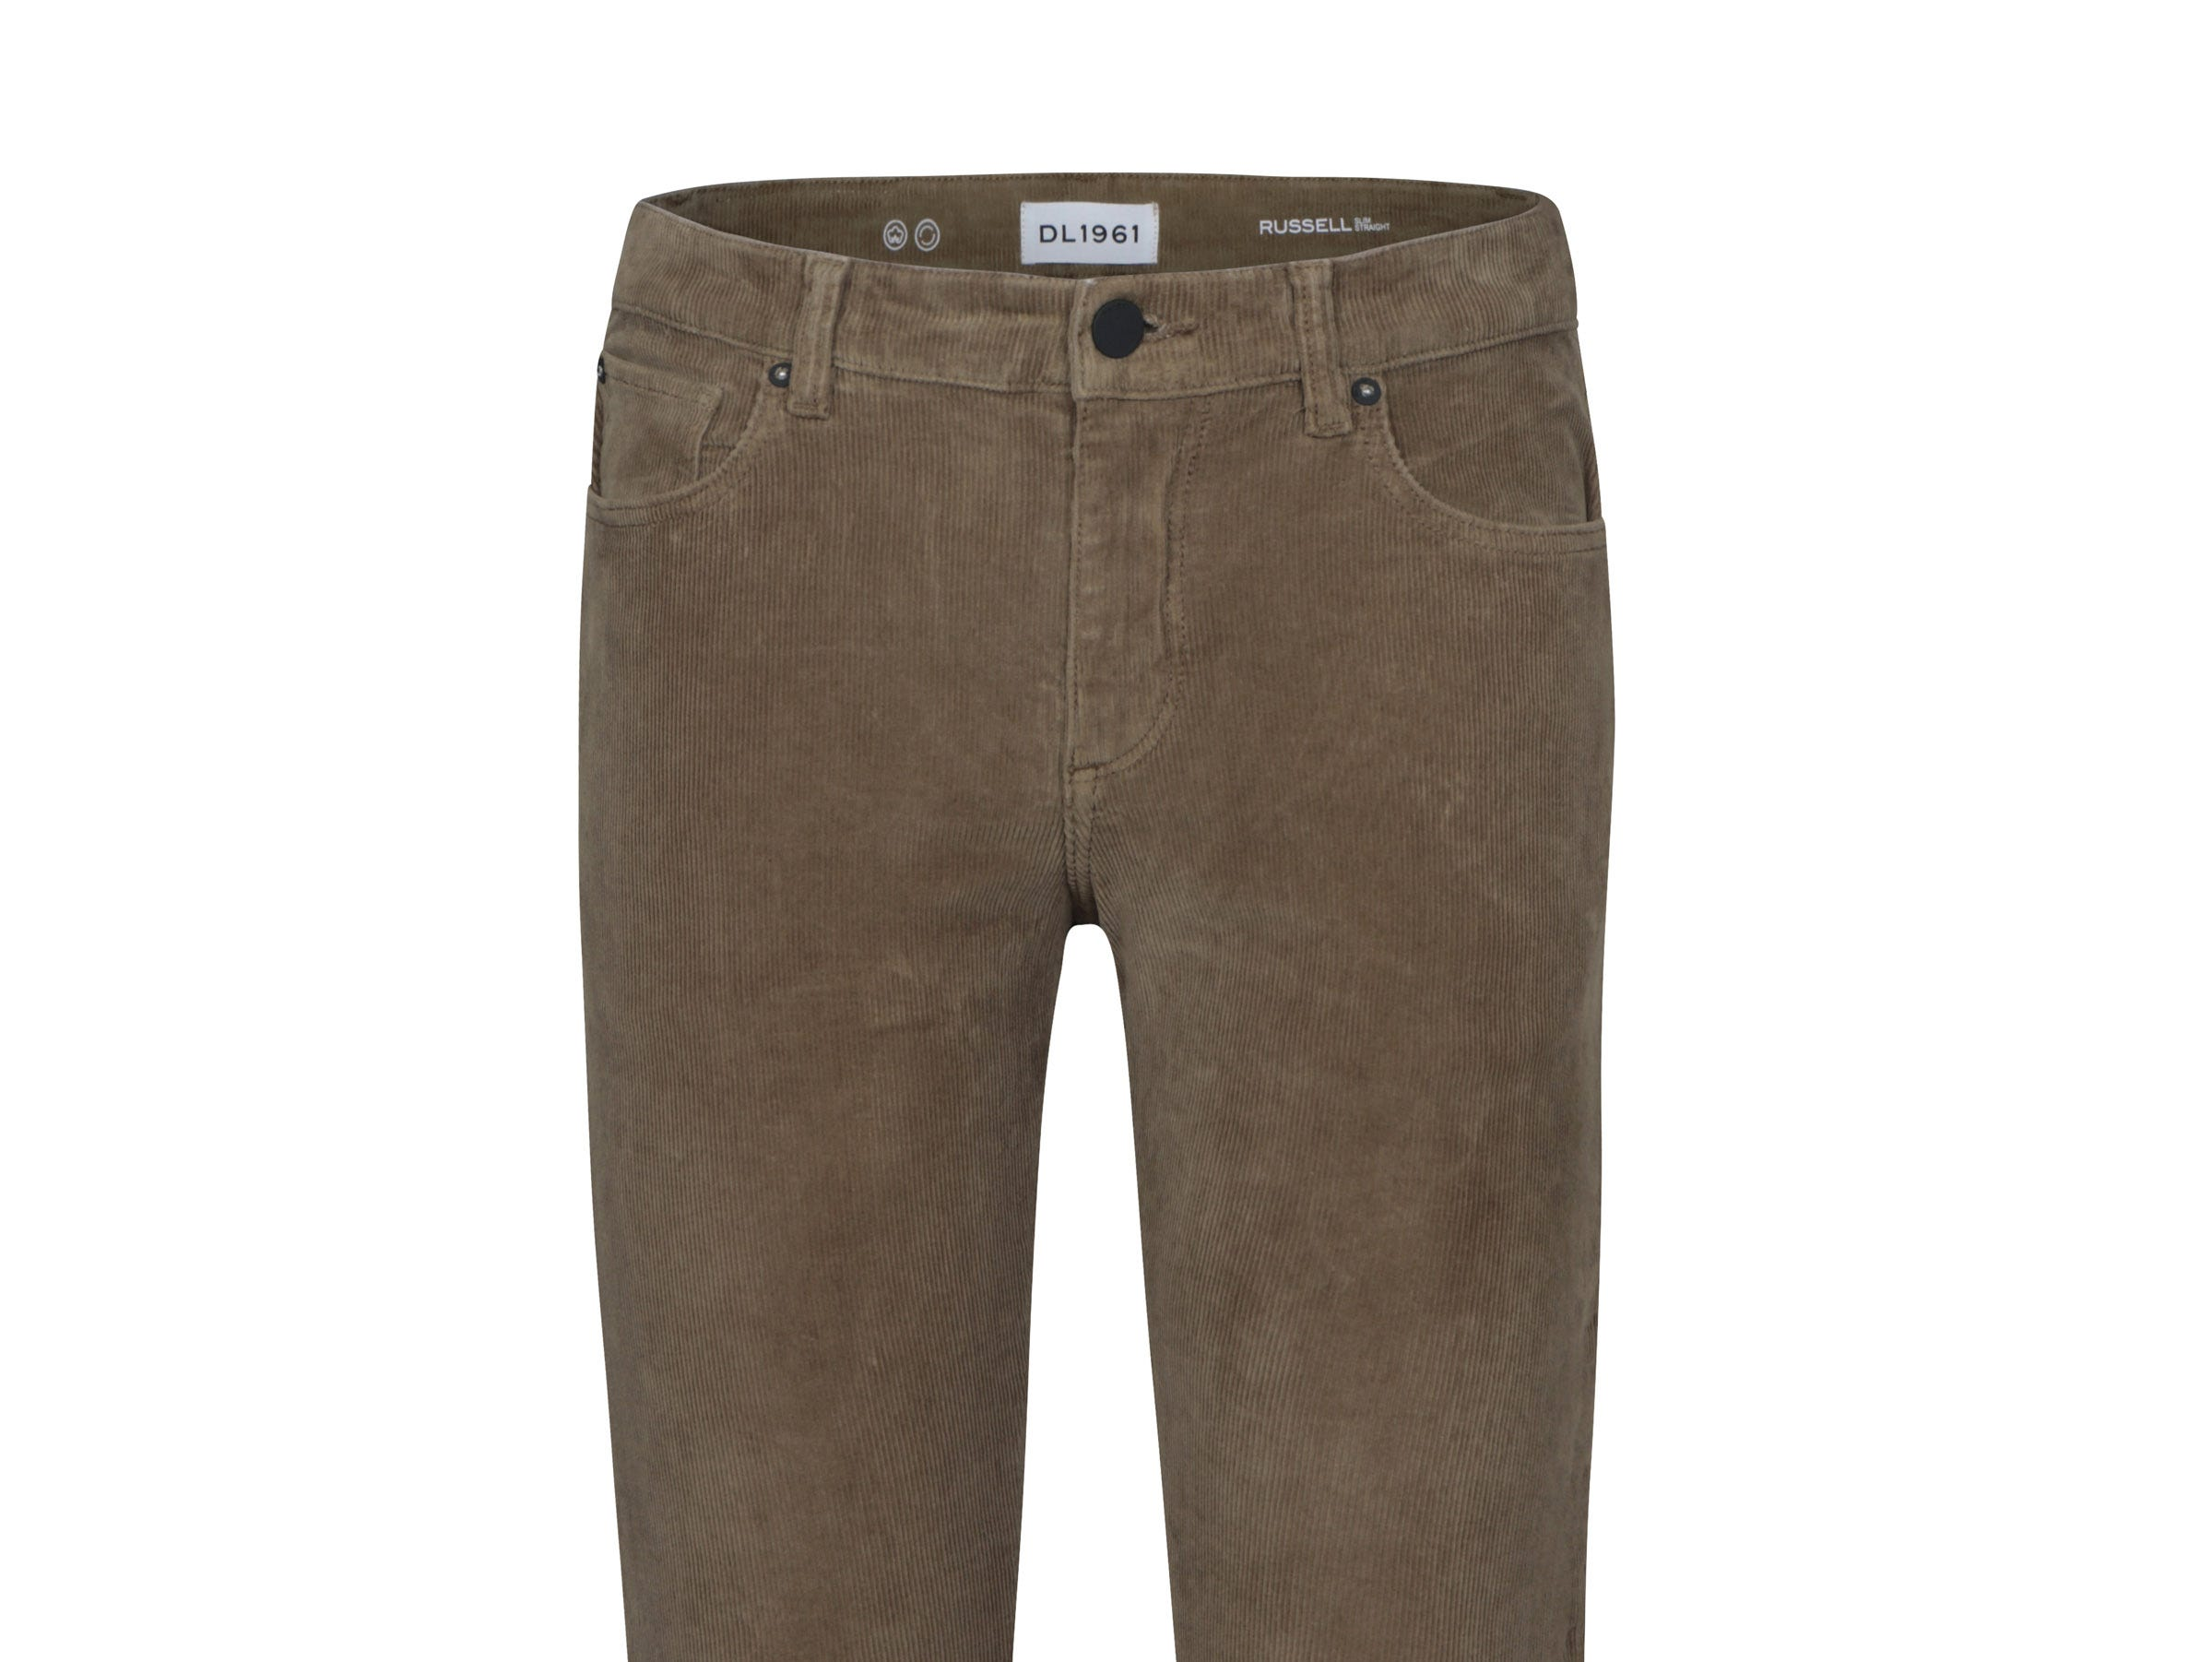 Fashion brand DL1961's Russell Slim Corduroy in Canteen, a corduroy pant for men, is priced at $188.